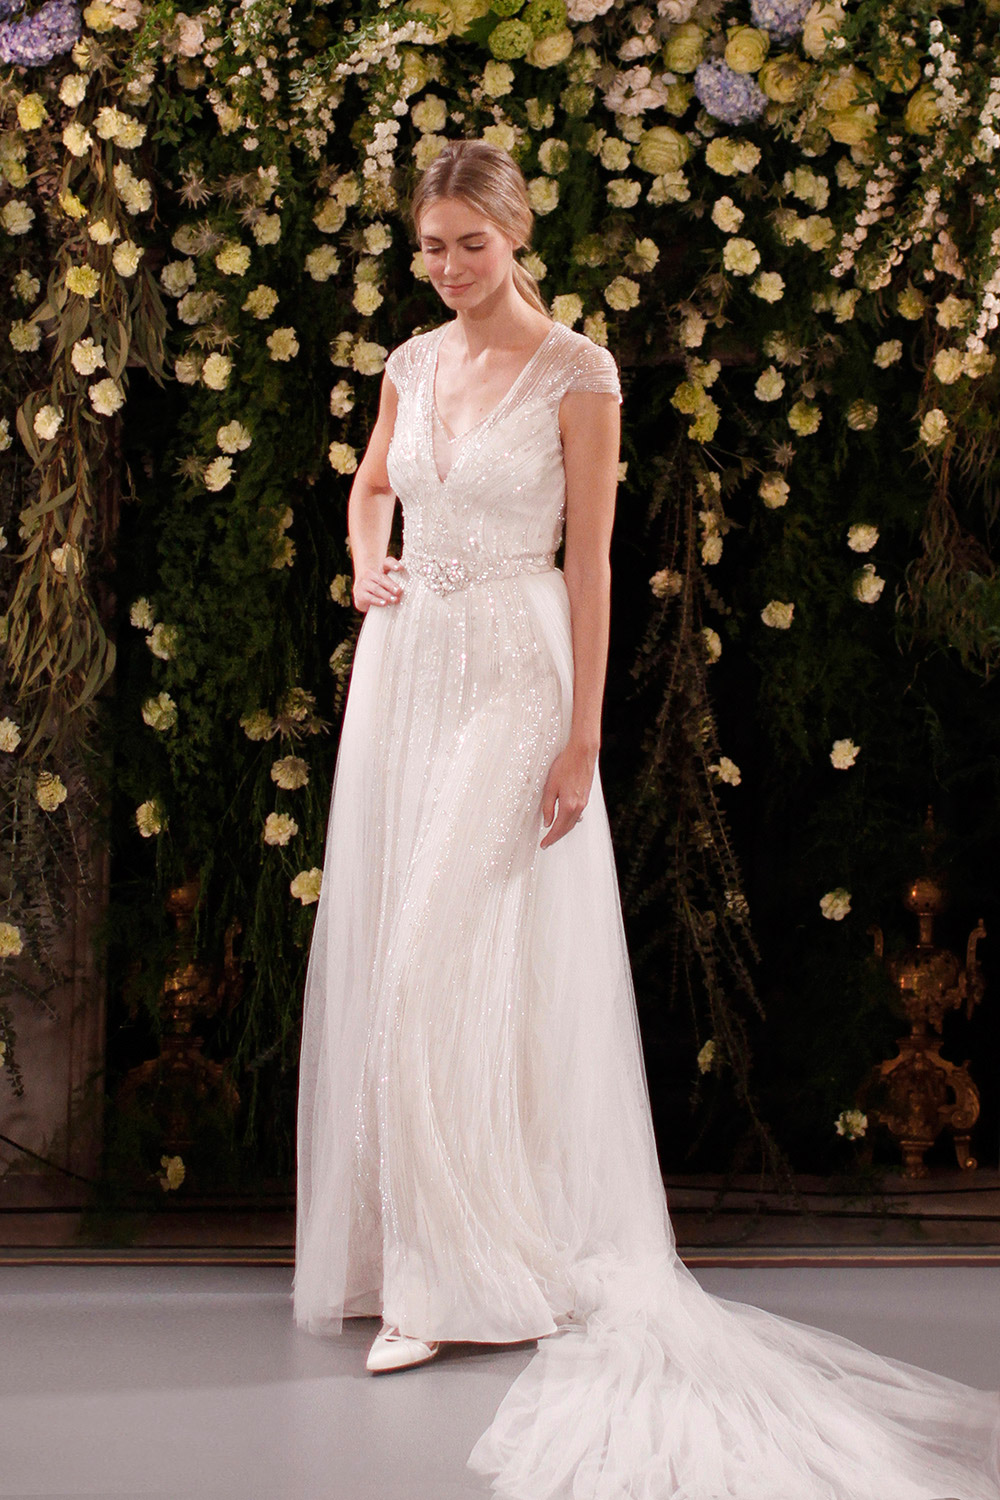 Amber and Ally – Jenny Packham 2019 Bridal Collection. www.theweddingnotebook.com